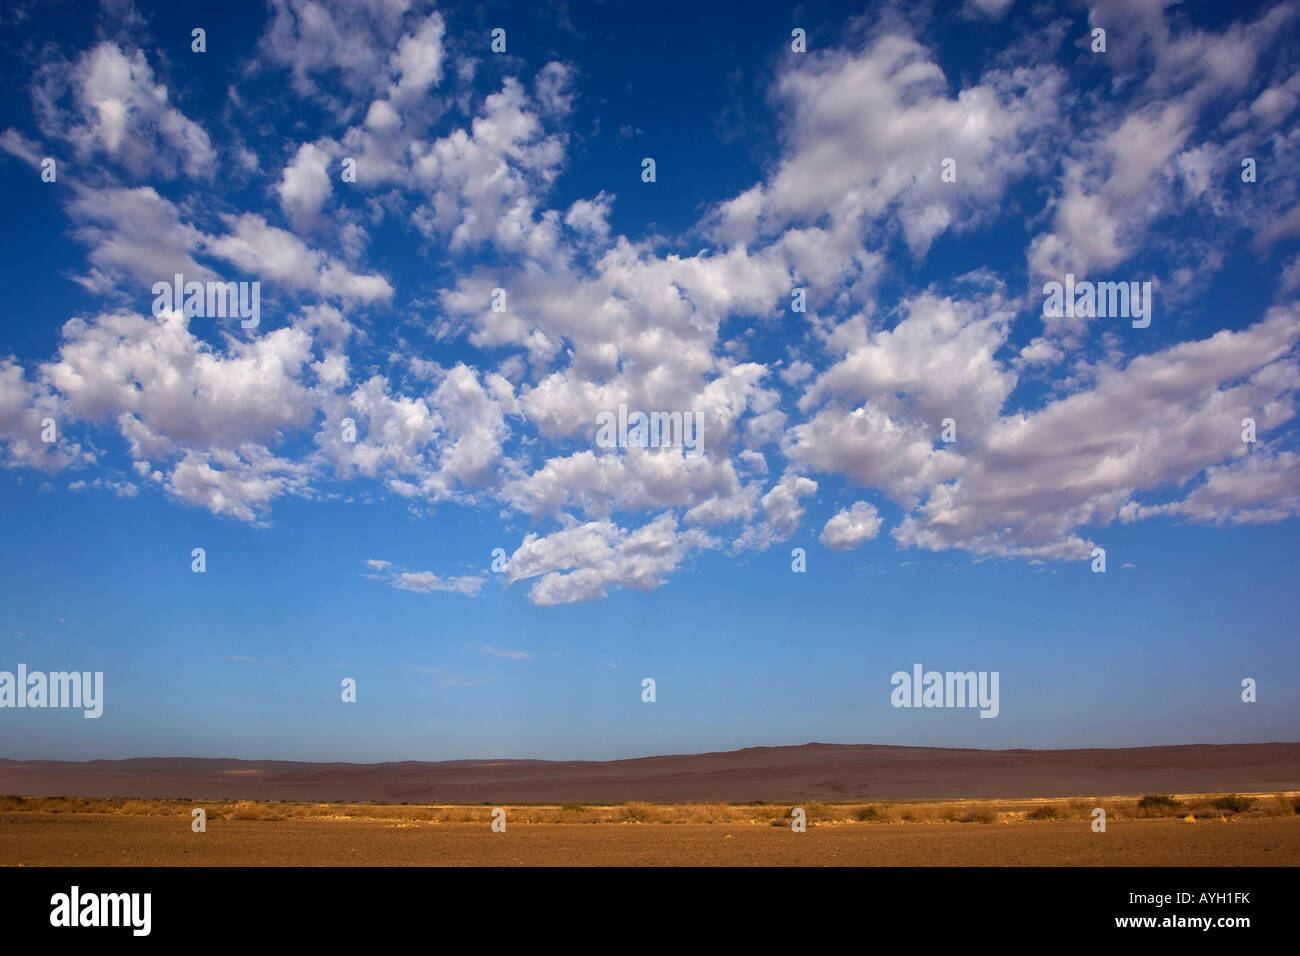 Clouds in blue sky, Namib Desert, Namibia, Africa - Stock Image